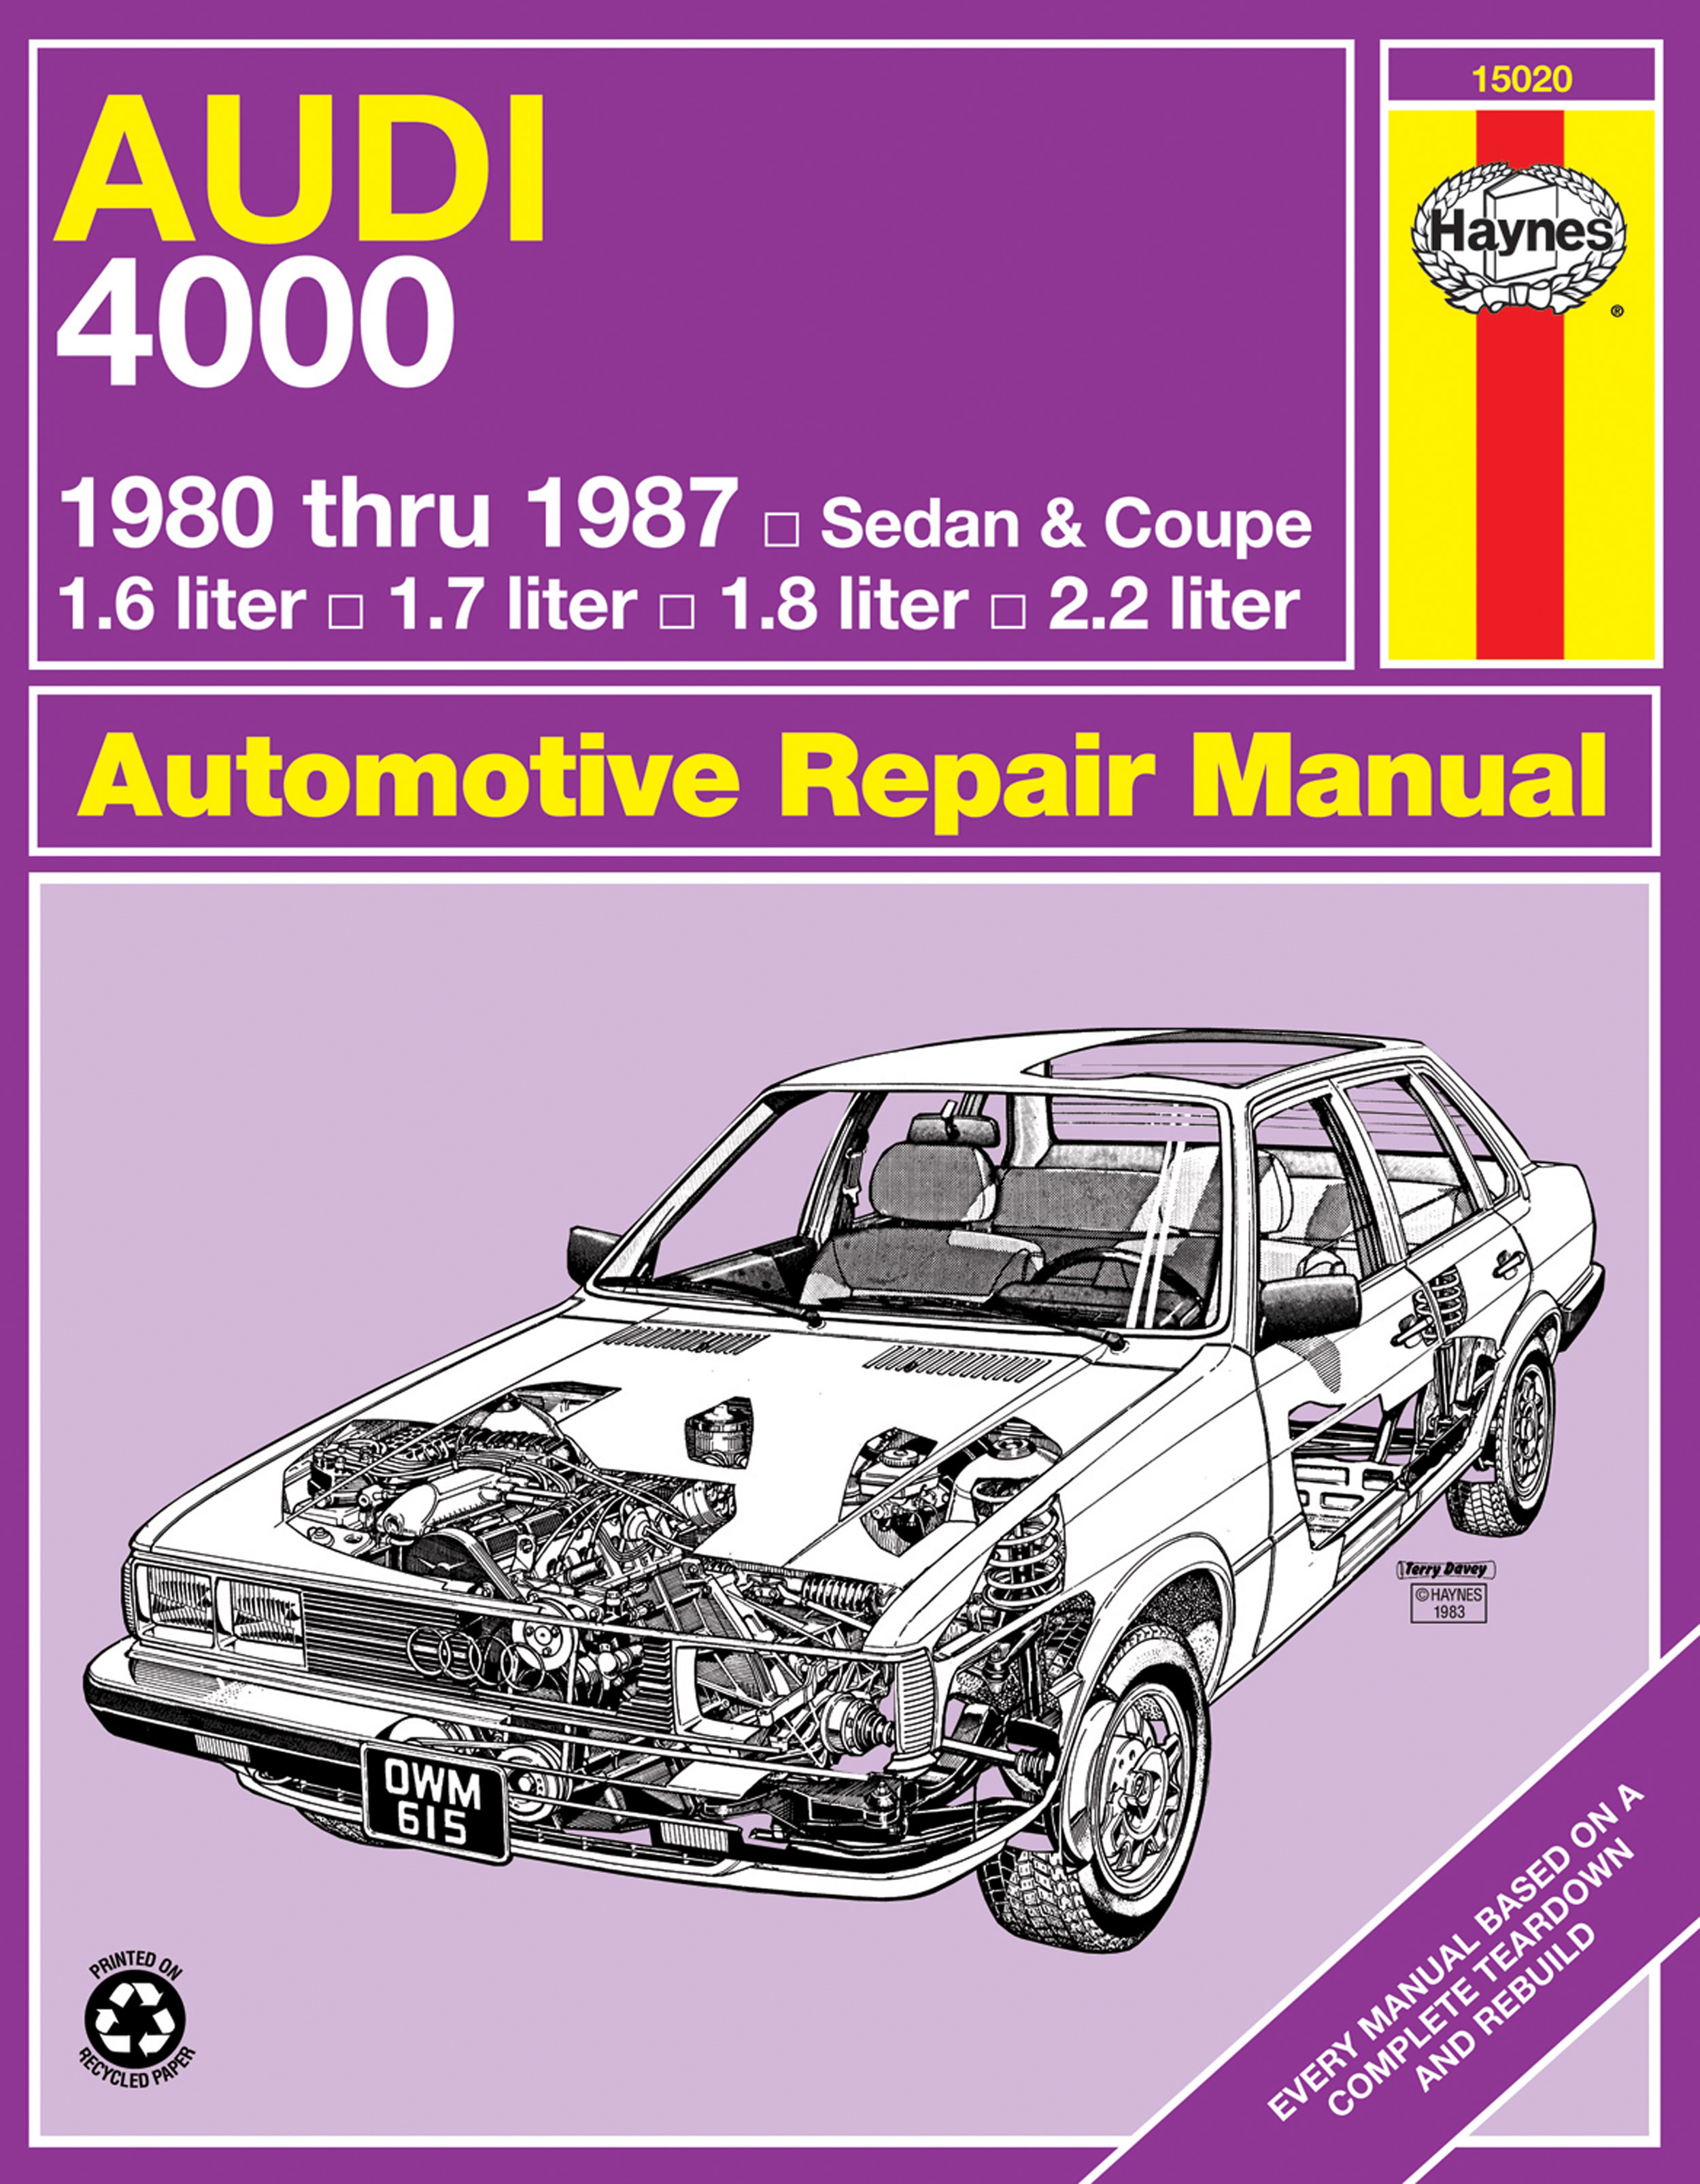 audi 4000 sedan coupe 80 87 haynes repair manual haynes manuals rh haynes com 2.2 Liter Water Bottle 2 Liters Equals Cups